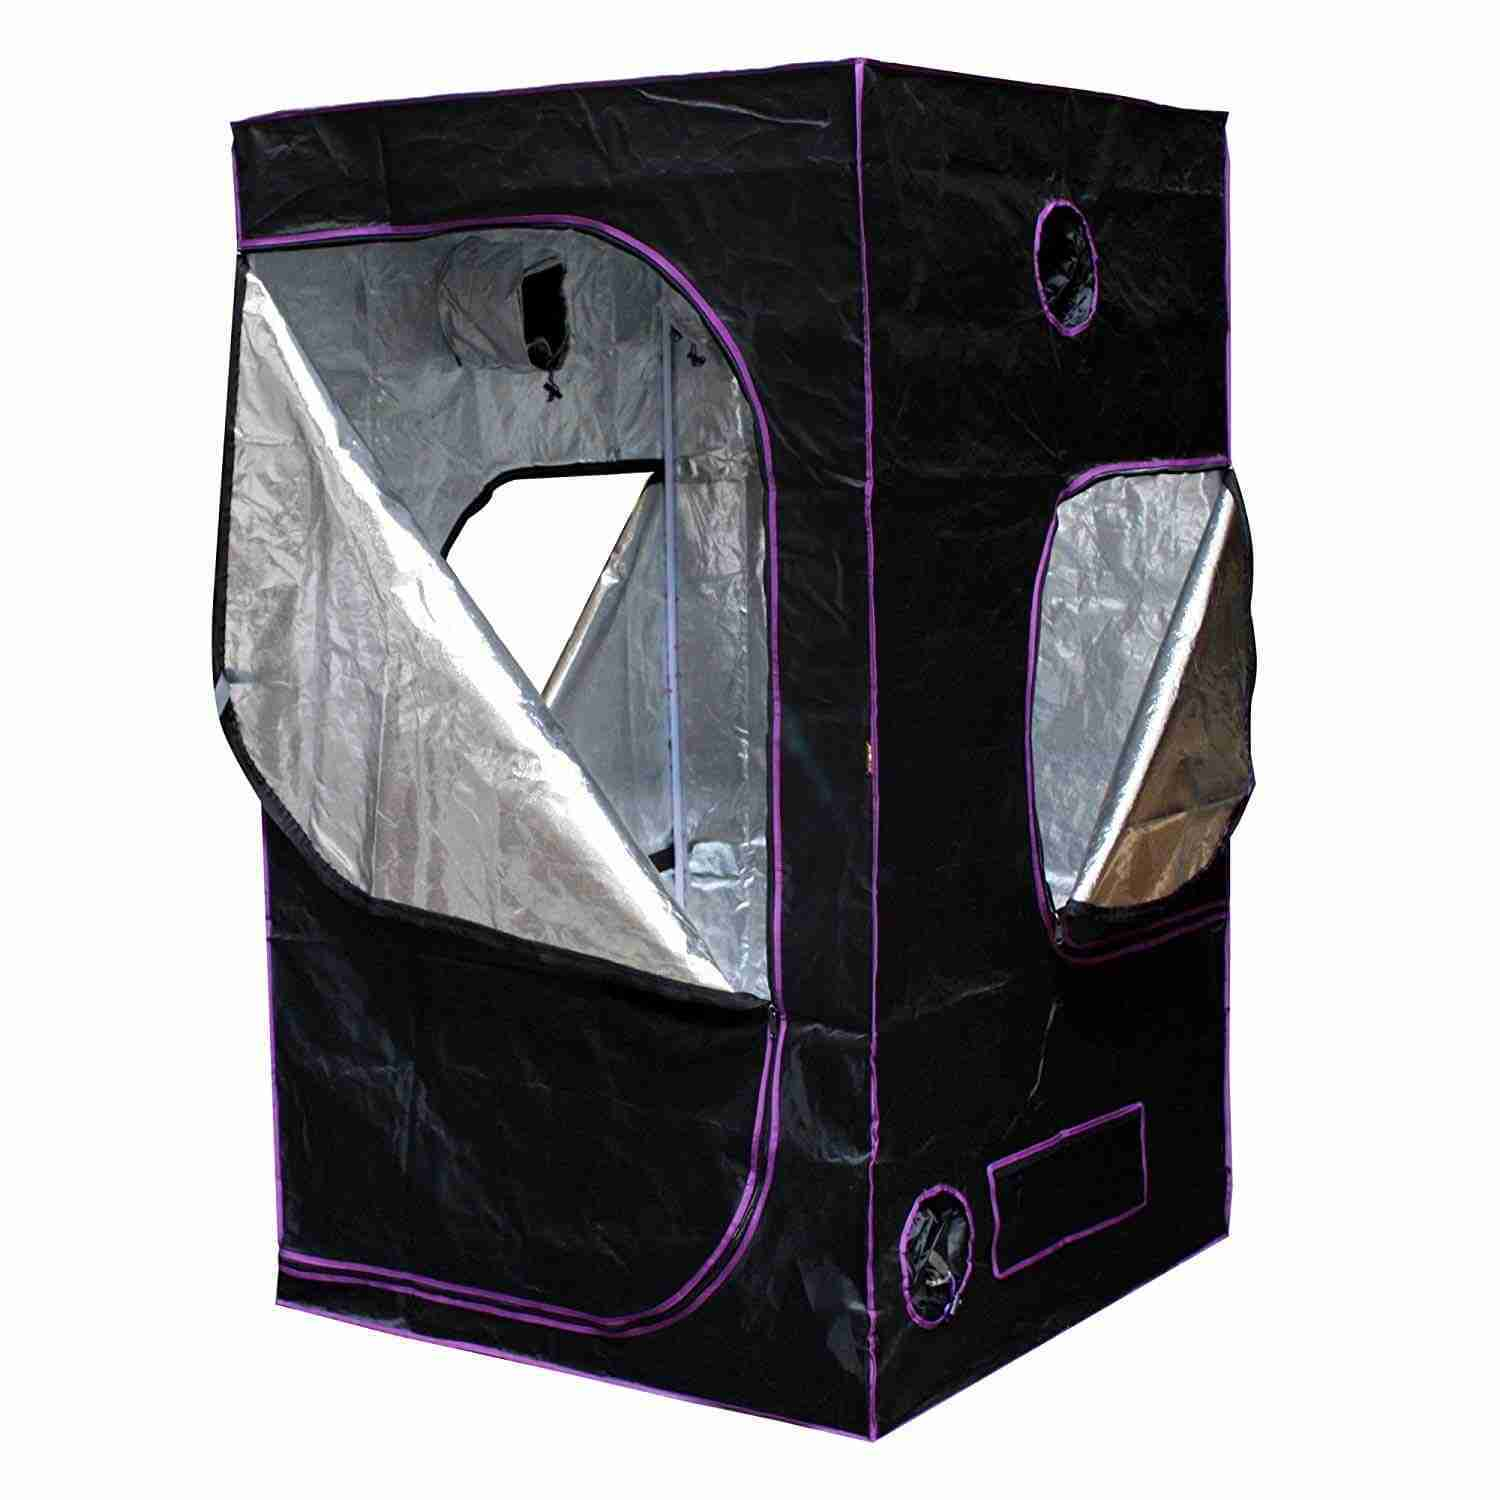 Apollo Horticulture 48x48x80 Mylar Hydroponic Grow Tent for Indoor Plant Growing